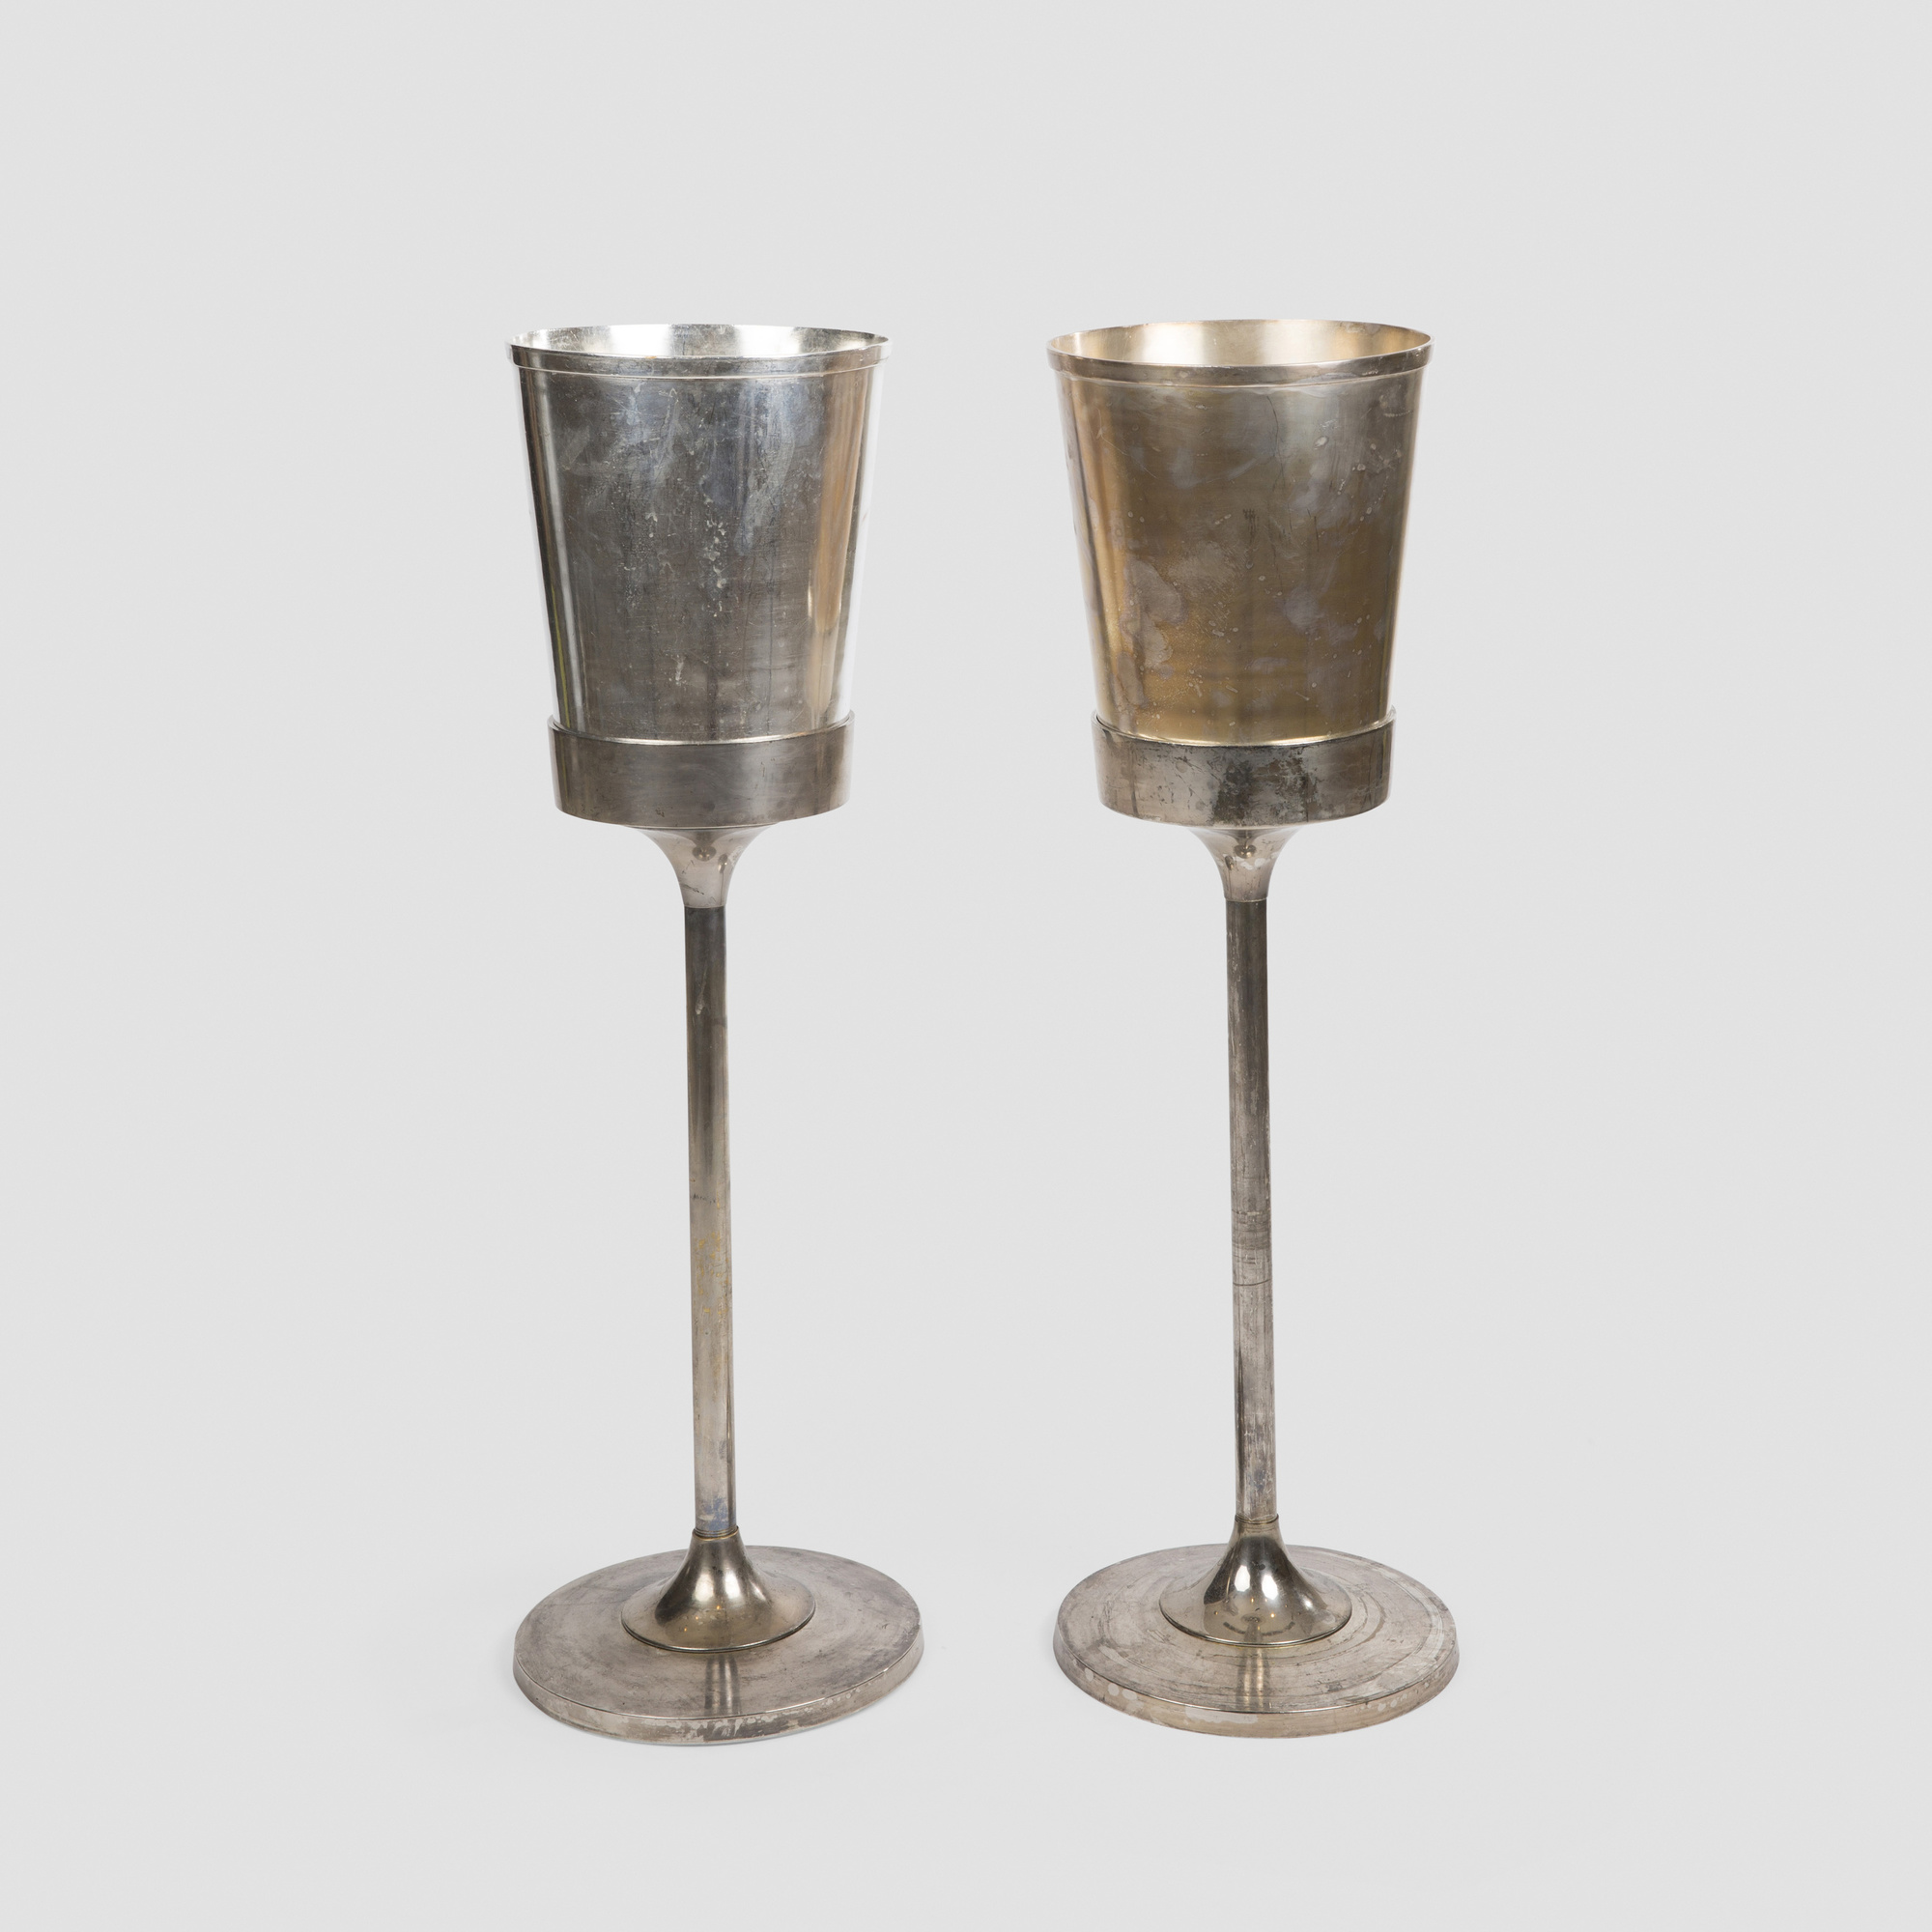 420:  / Wine coolers with stands from The Four Seasons, pair (1 of 1)